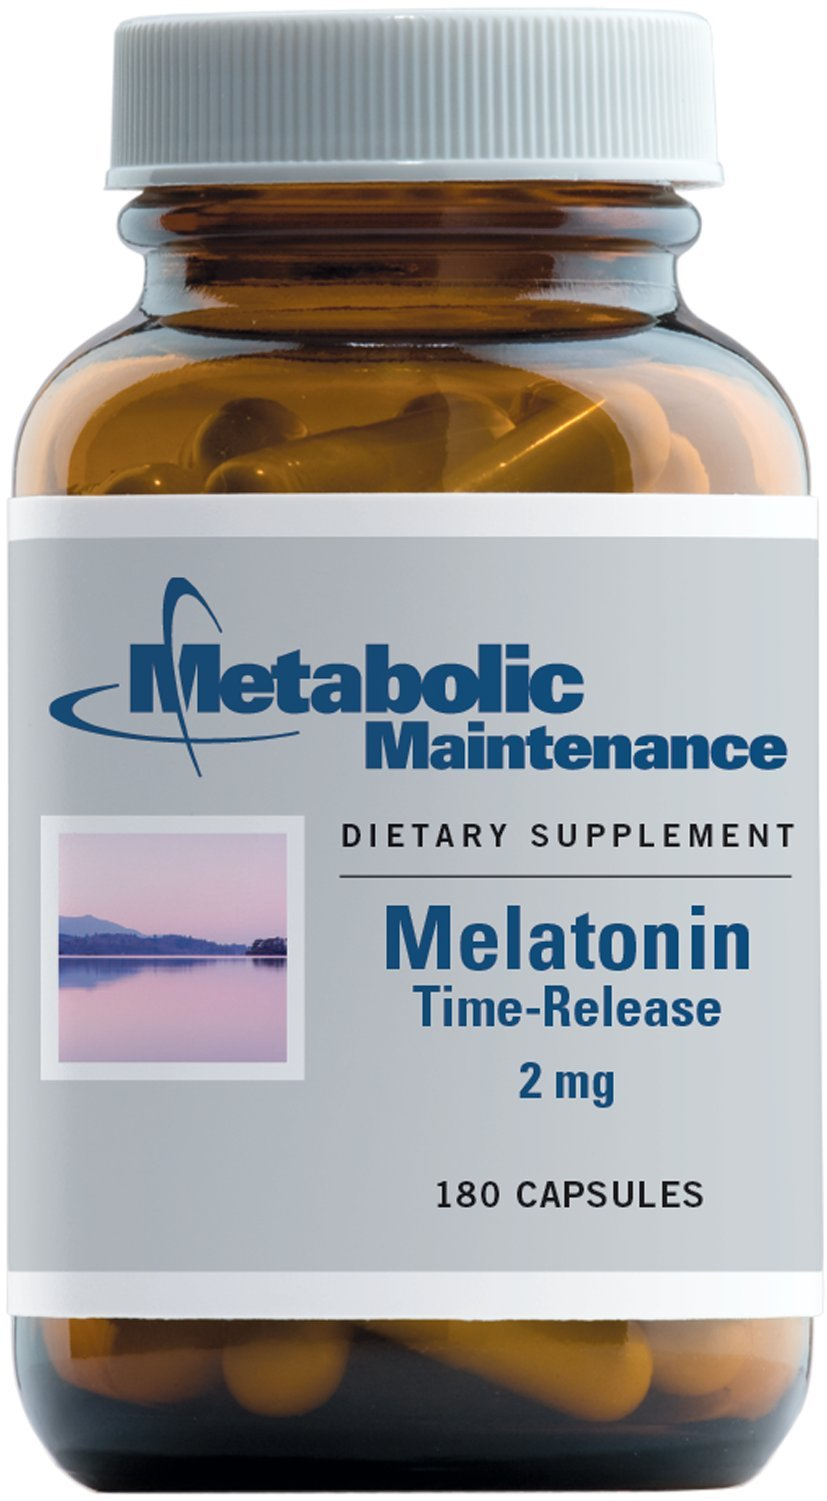 Metabolic Maintenance - Melatonin - 2 mg, Timed Release Supports Restful Sleep + Nerve Health, 180 Capsules